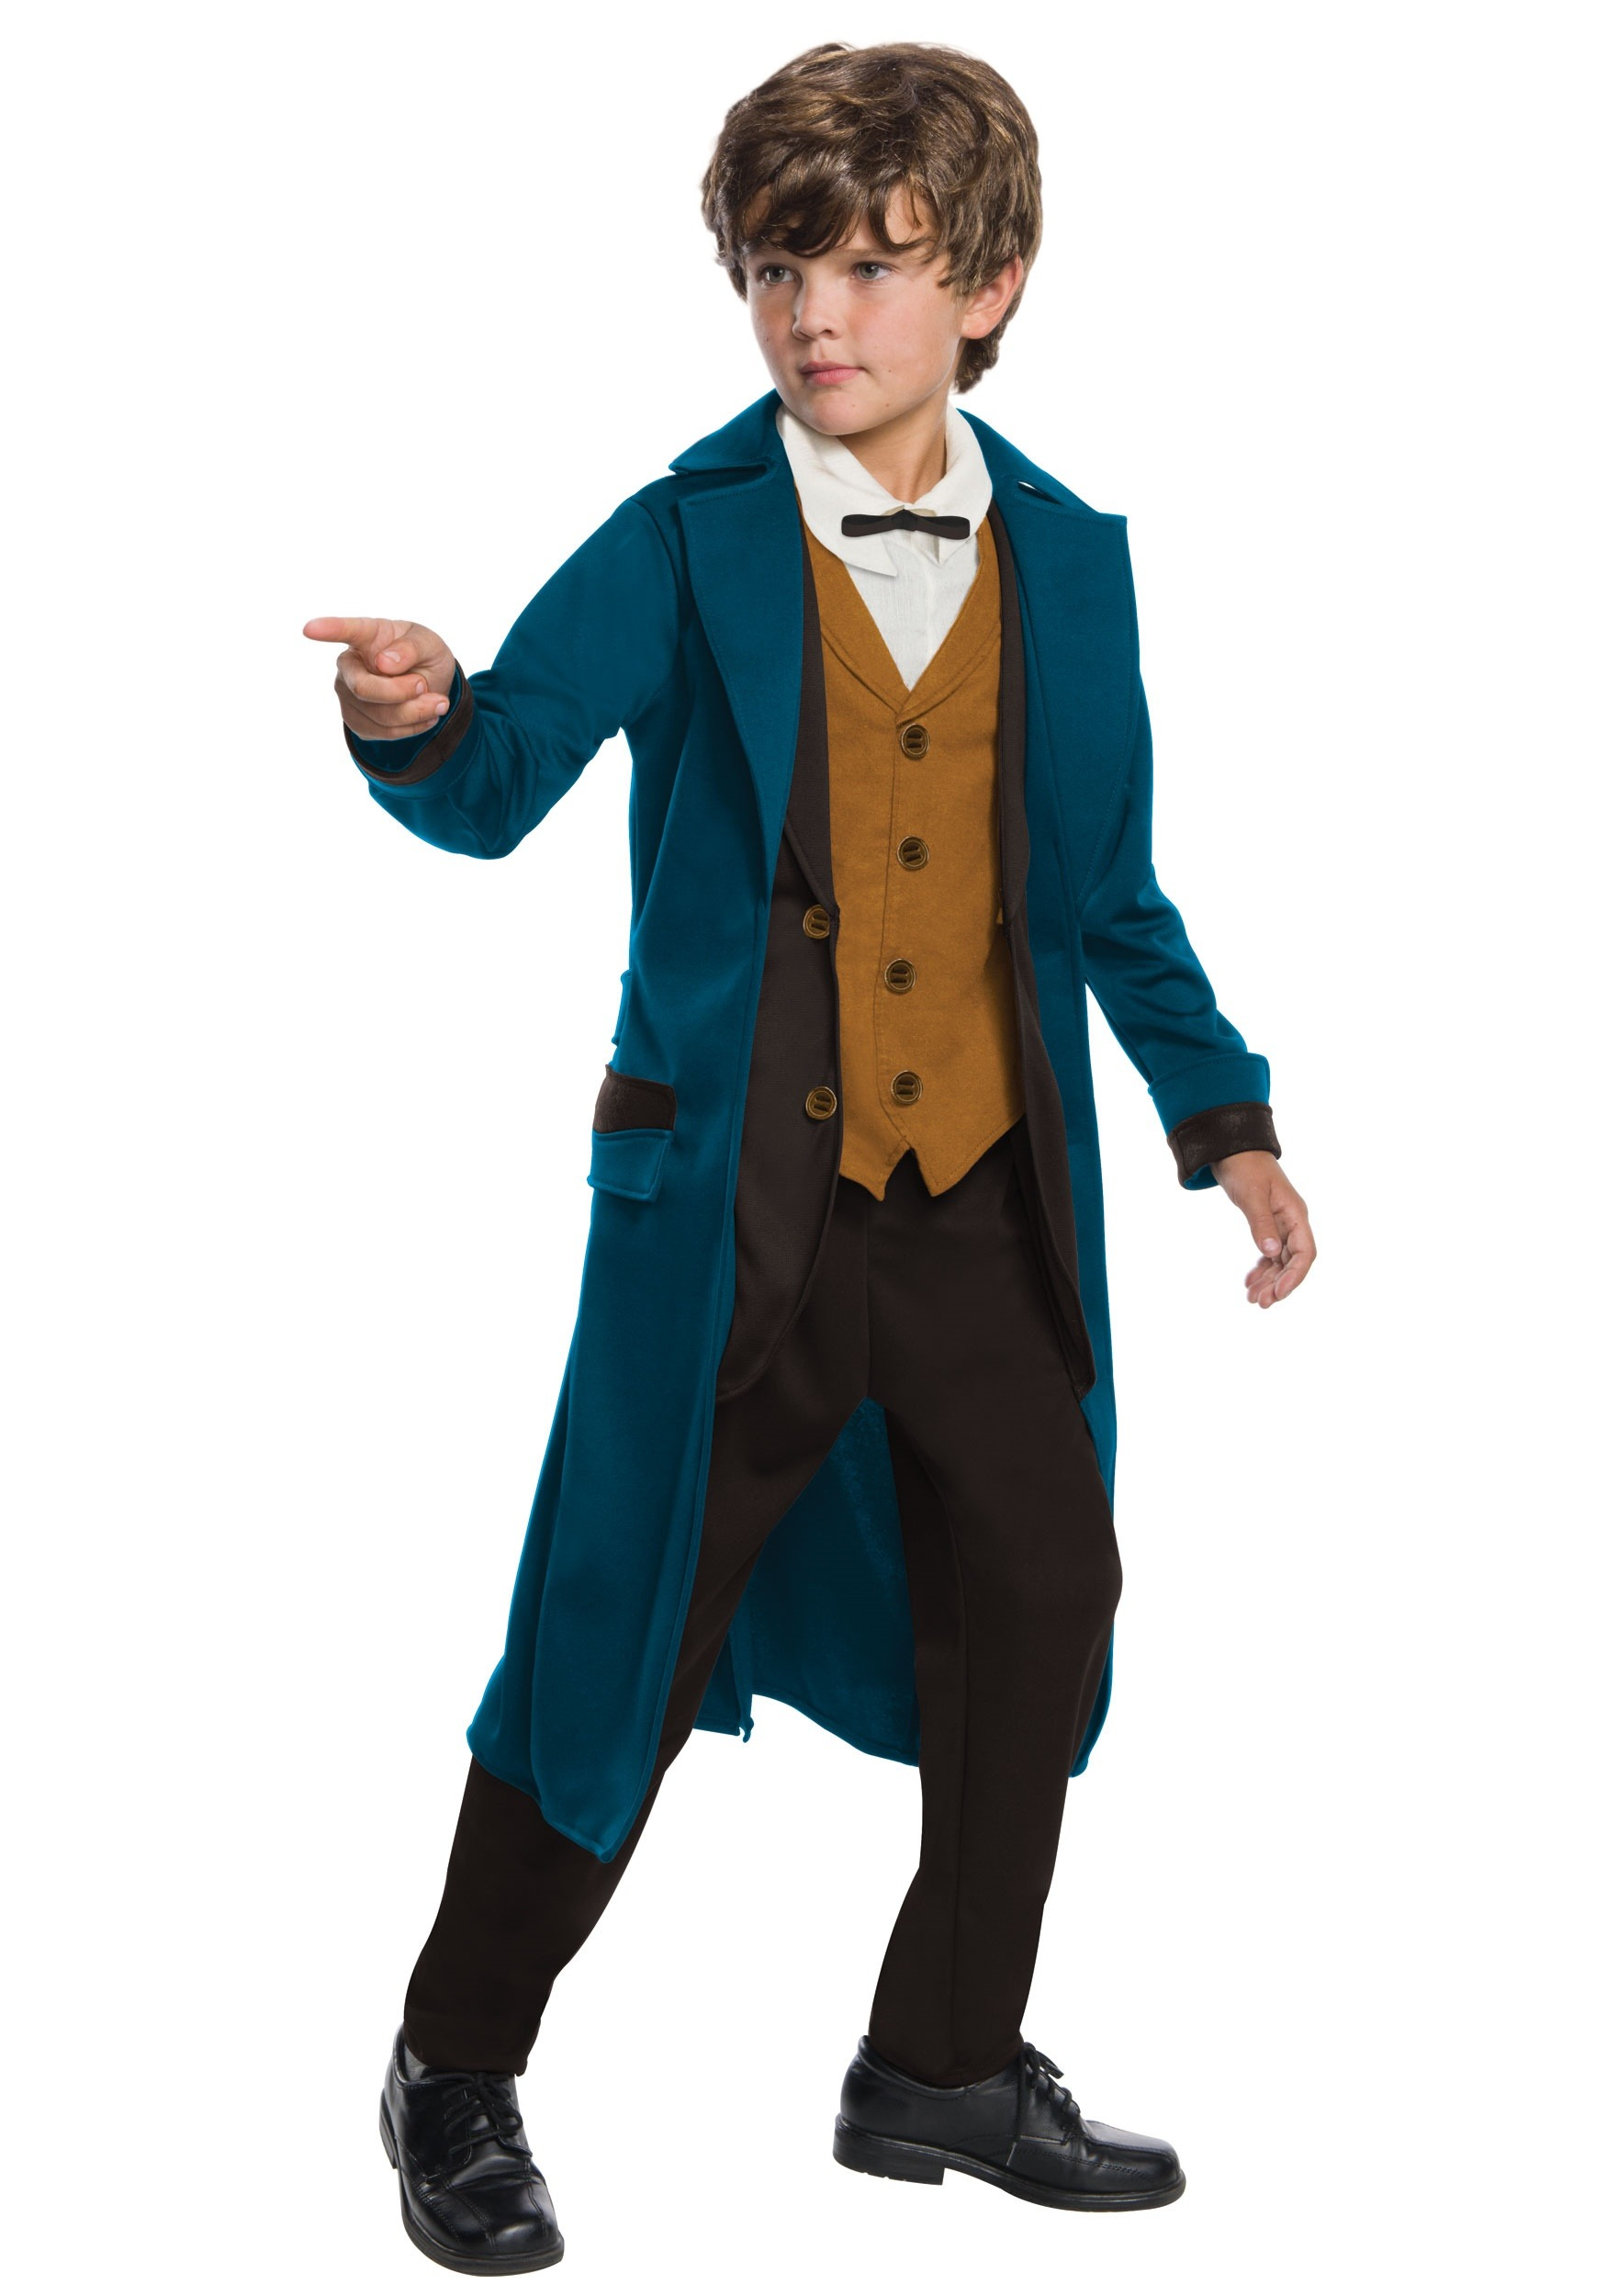 Fantastic Beasts Newt Scamander Deluxe Costume for Boys